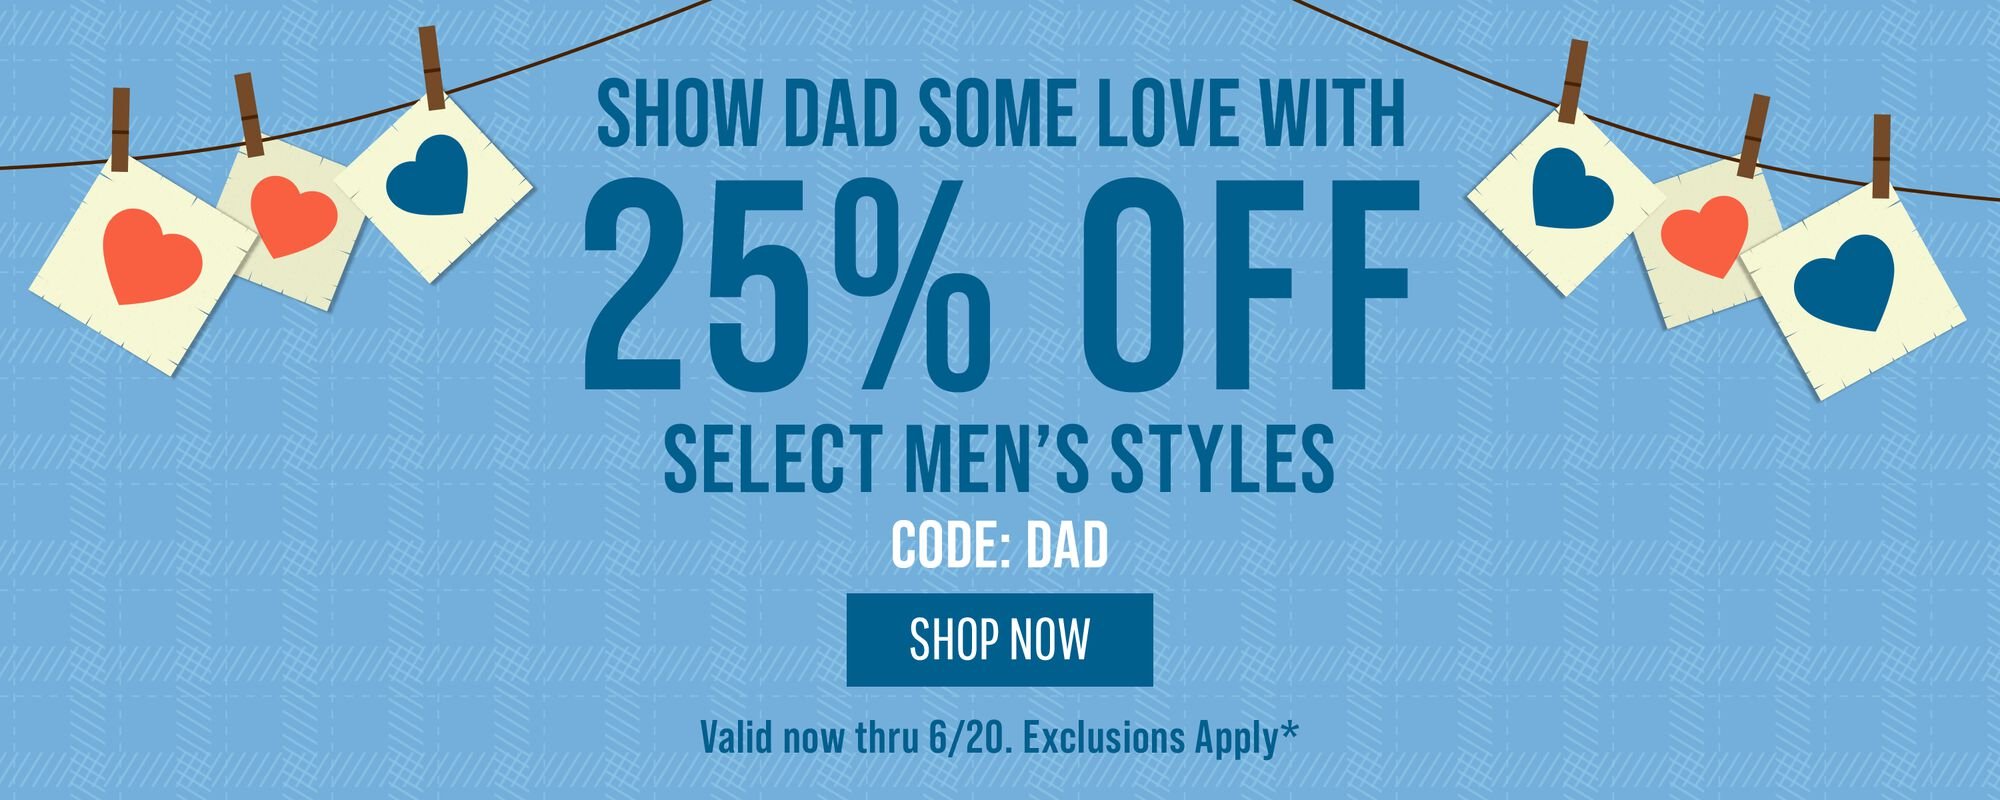 25% OFF Select Men's Styles  + 20% OFF Almost Everything Else!  Code: DAD - ends 6/20